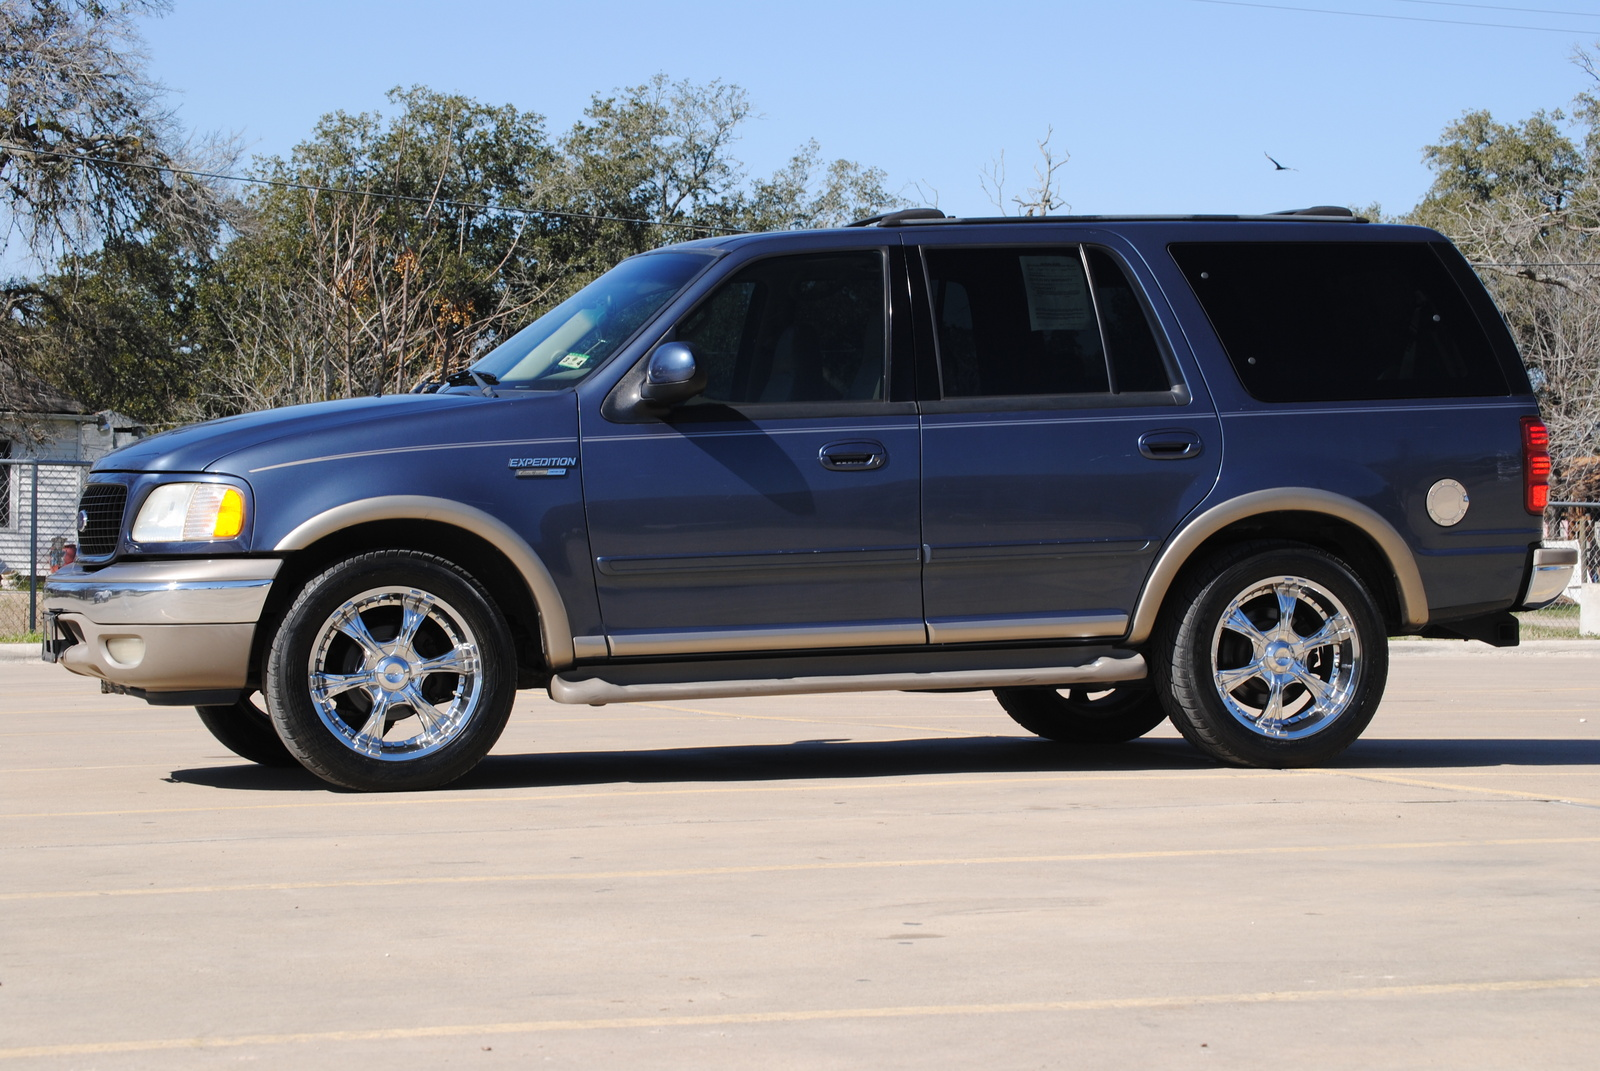 Ford Expedition 2002 foto - 1